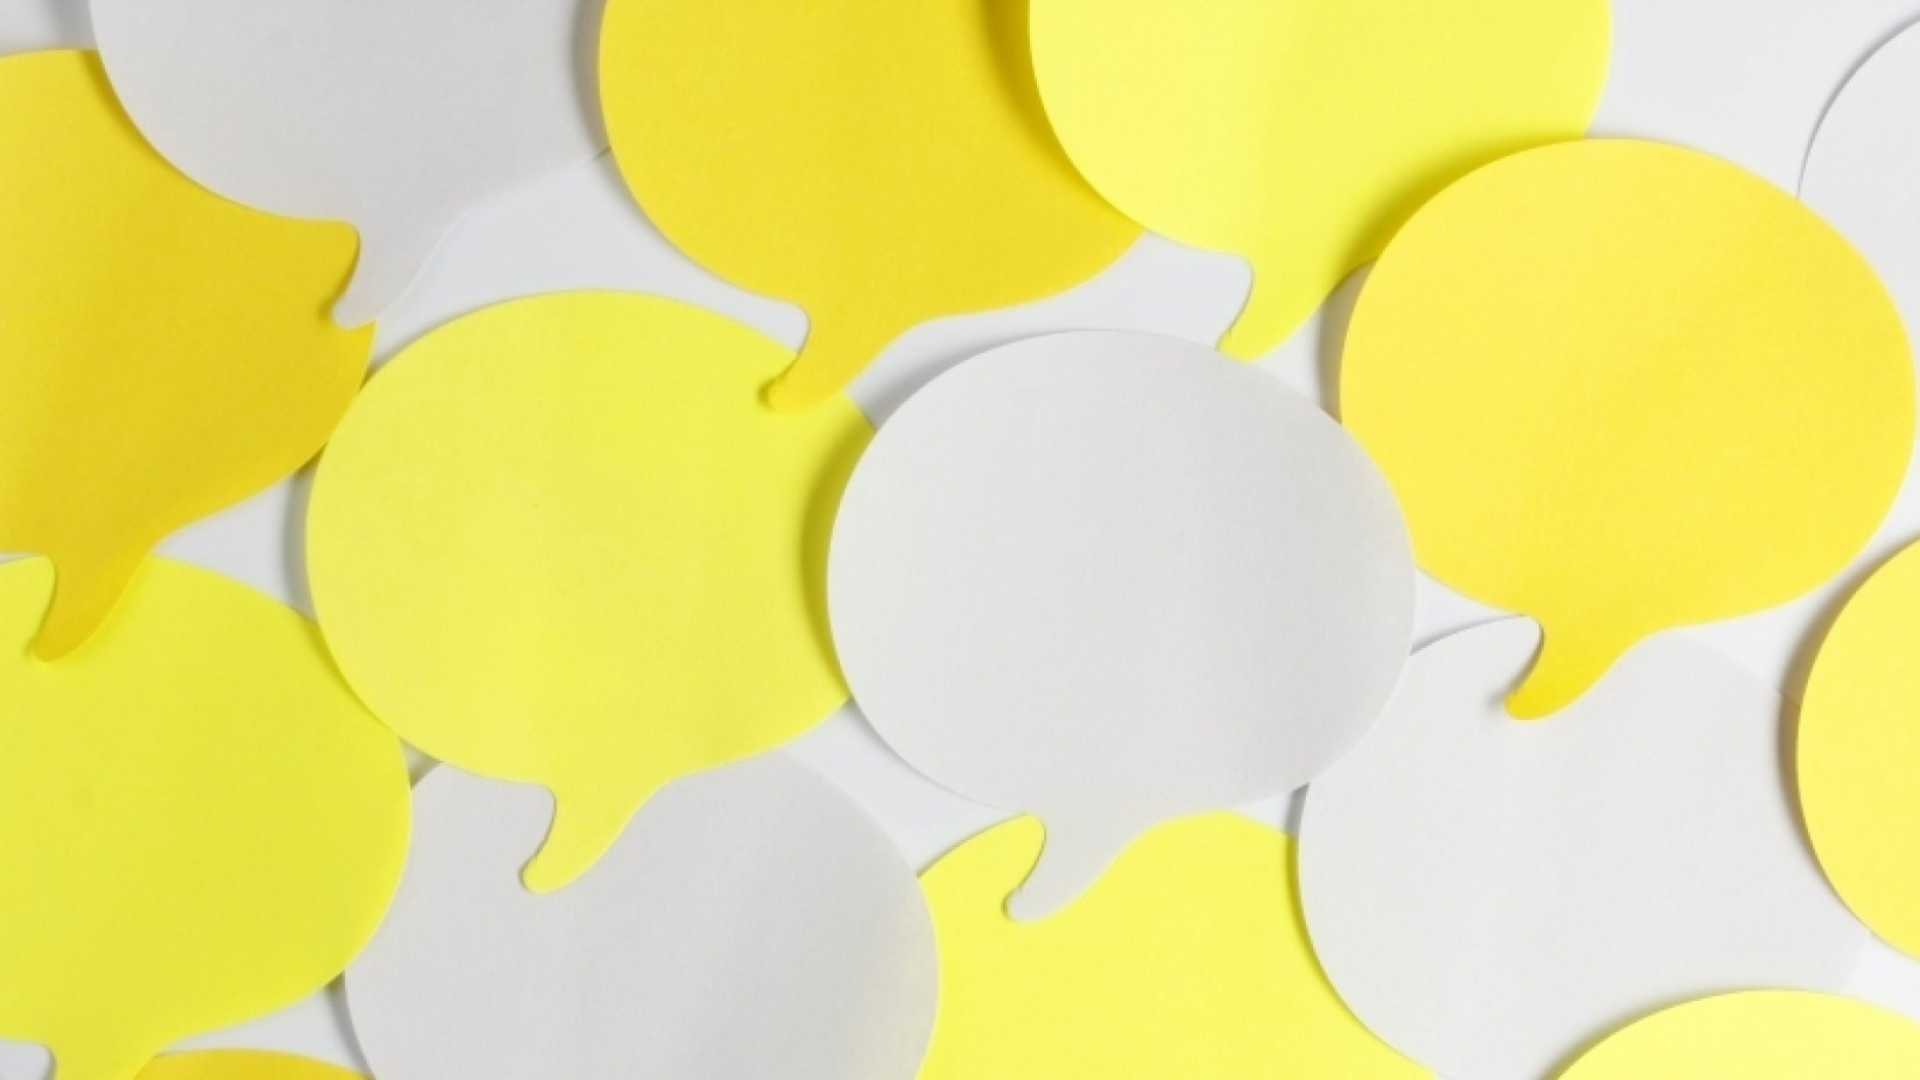 5 Steps for Getting Meaningful Employee Feedback